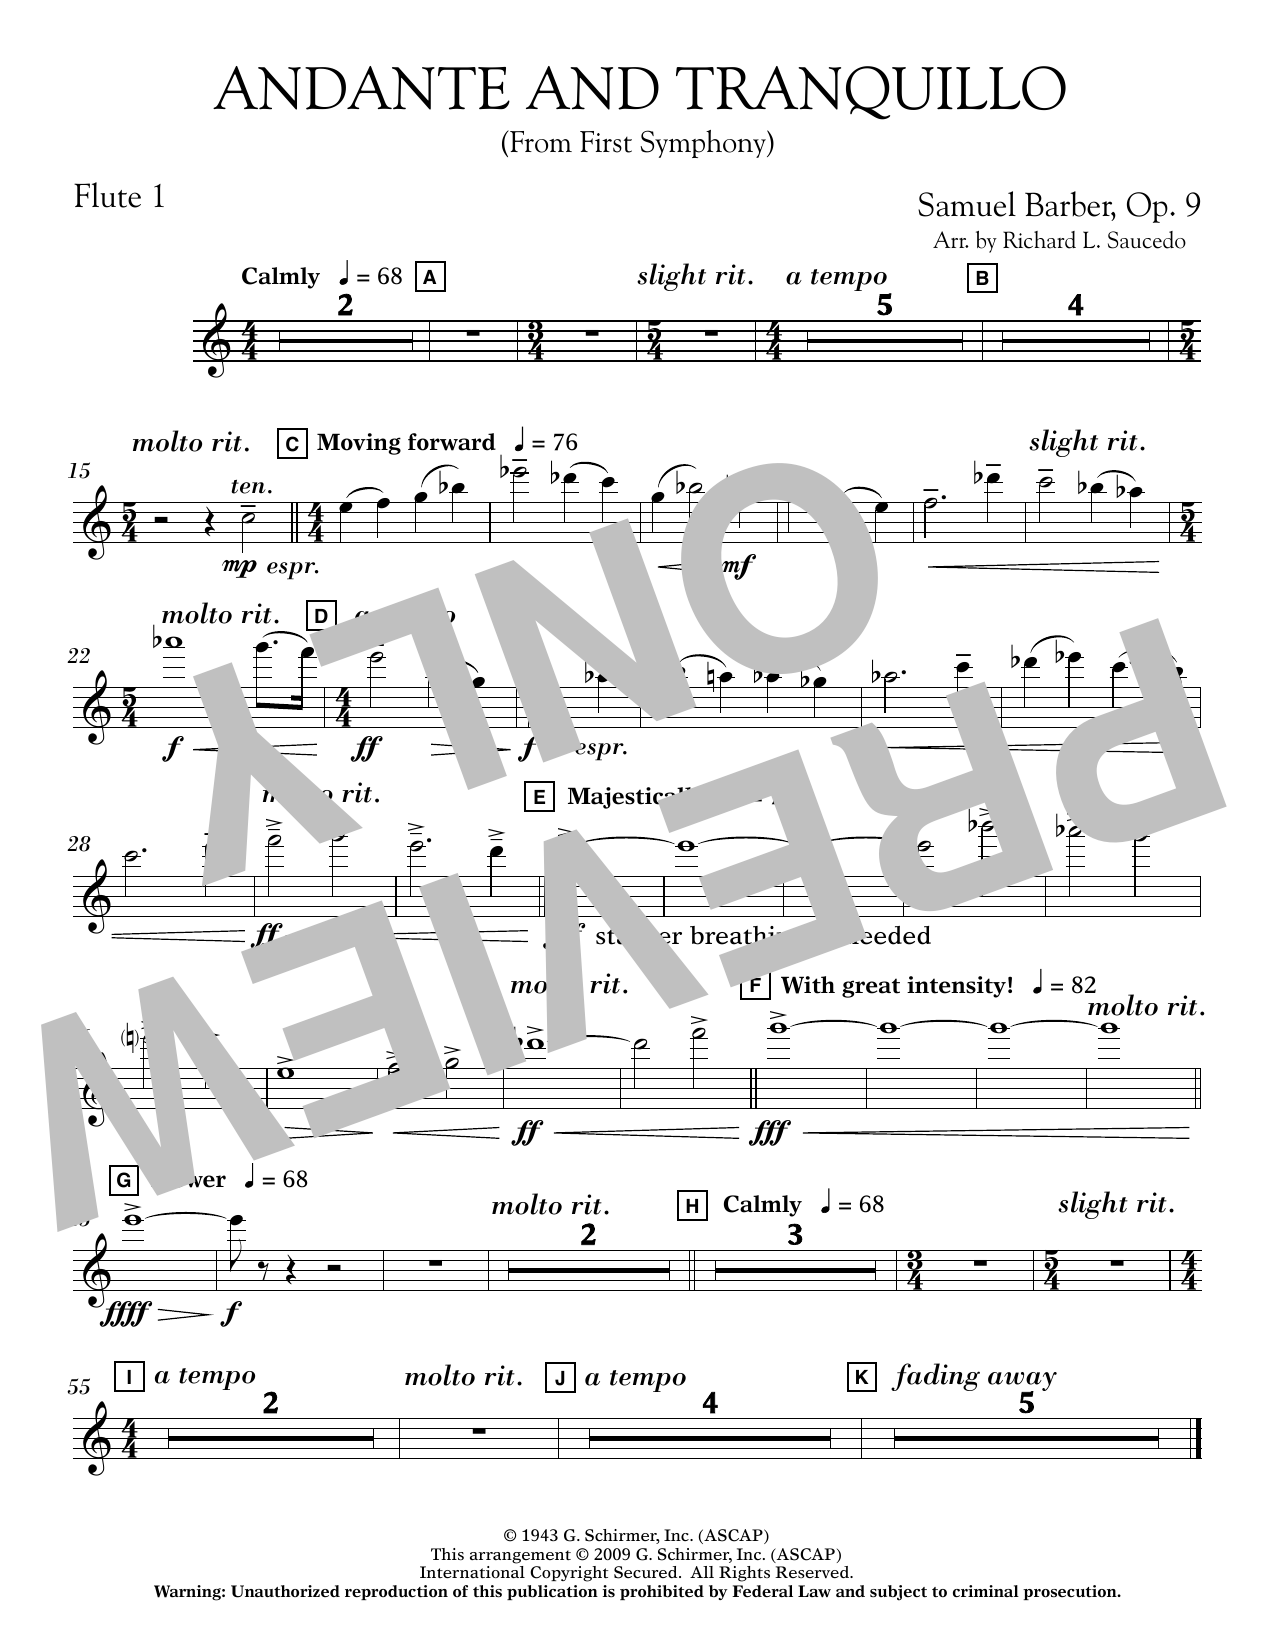 Andante and Tranquillo (from First Symphony) - Flute 1 Sheet Music